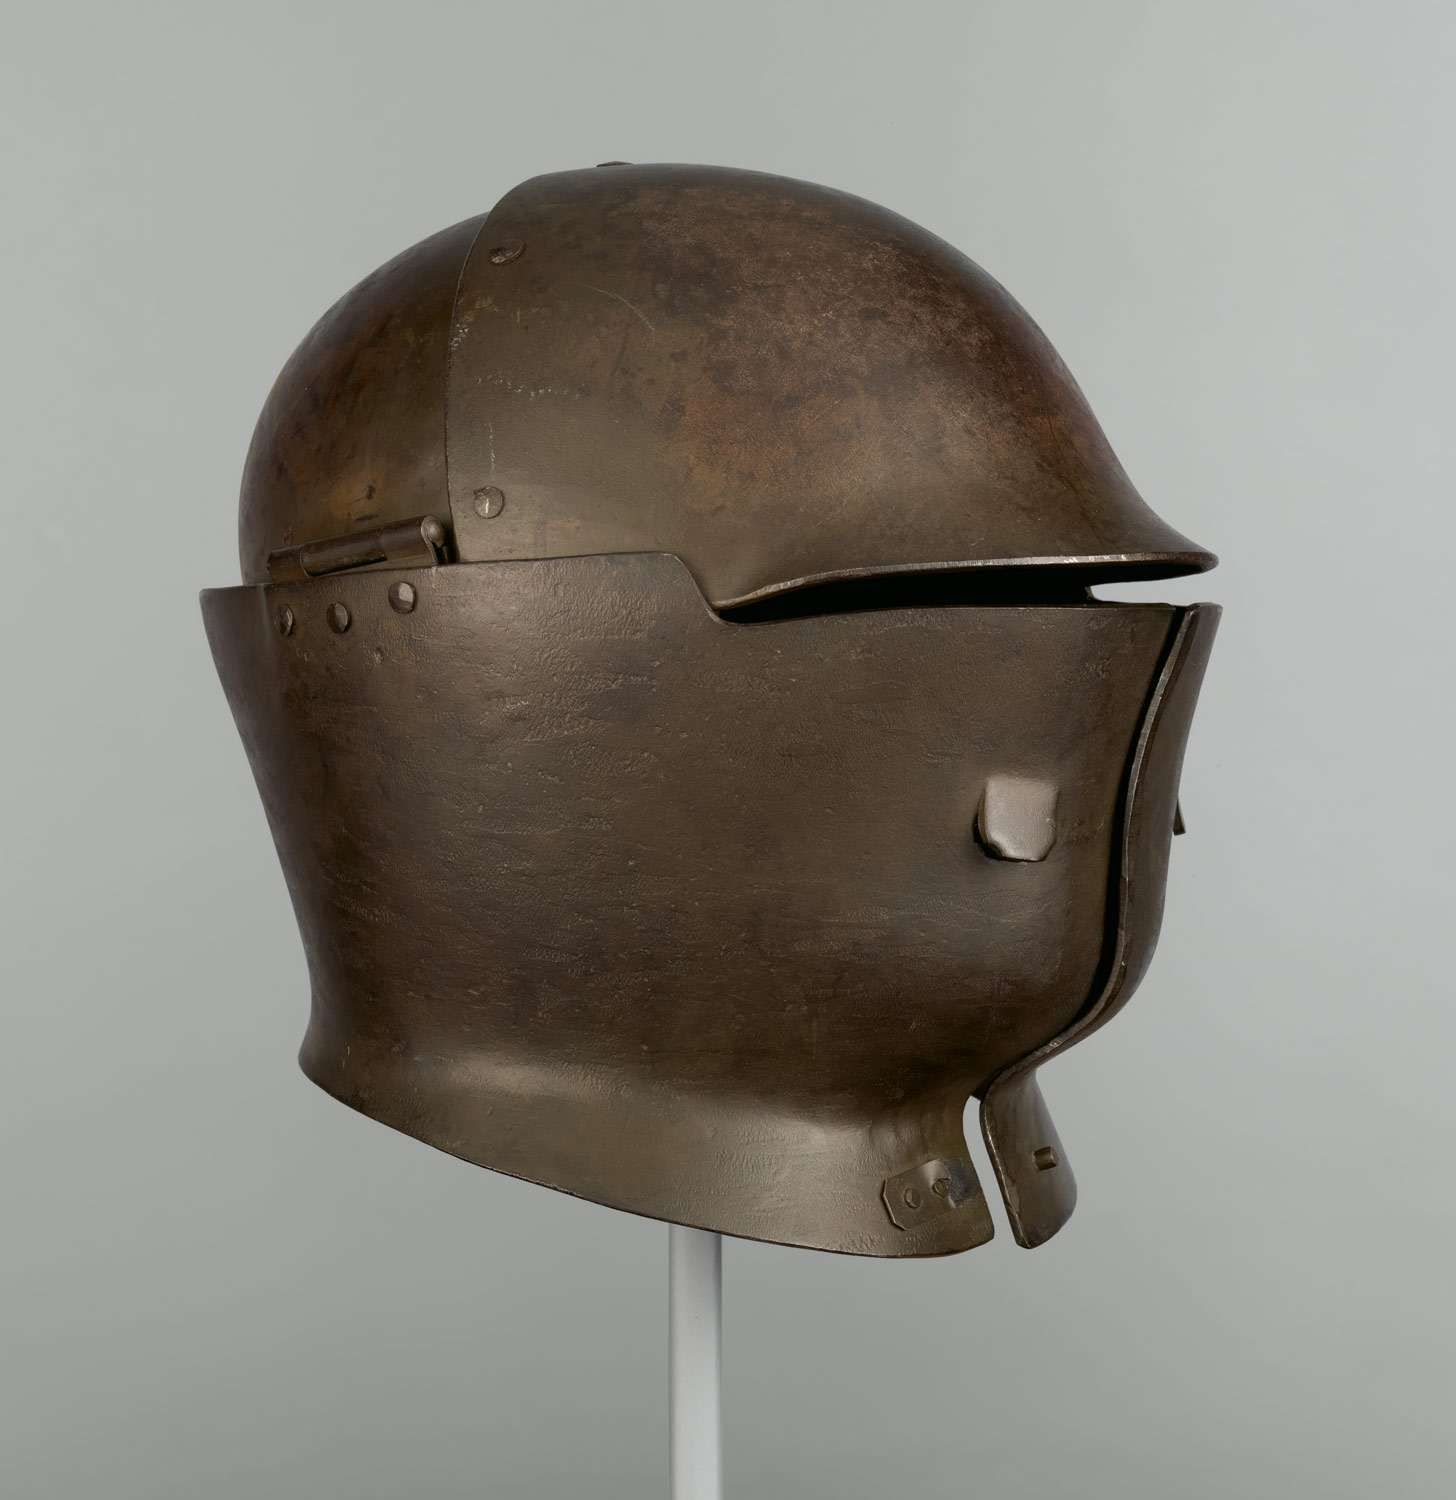 American Helmet Model No. 7, Sentinels Helmet